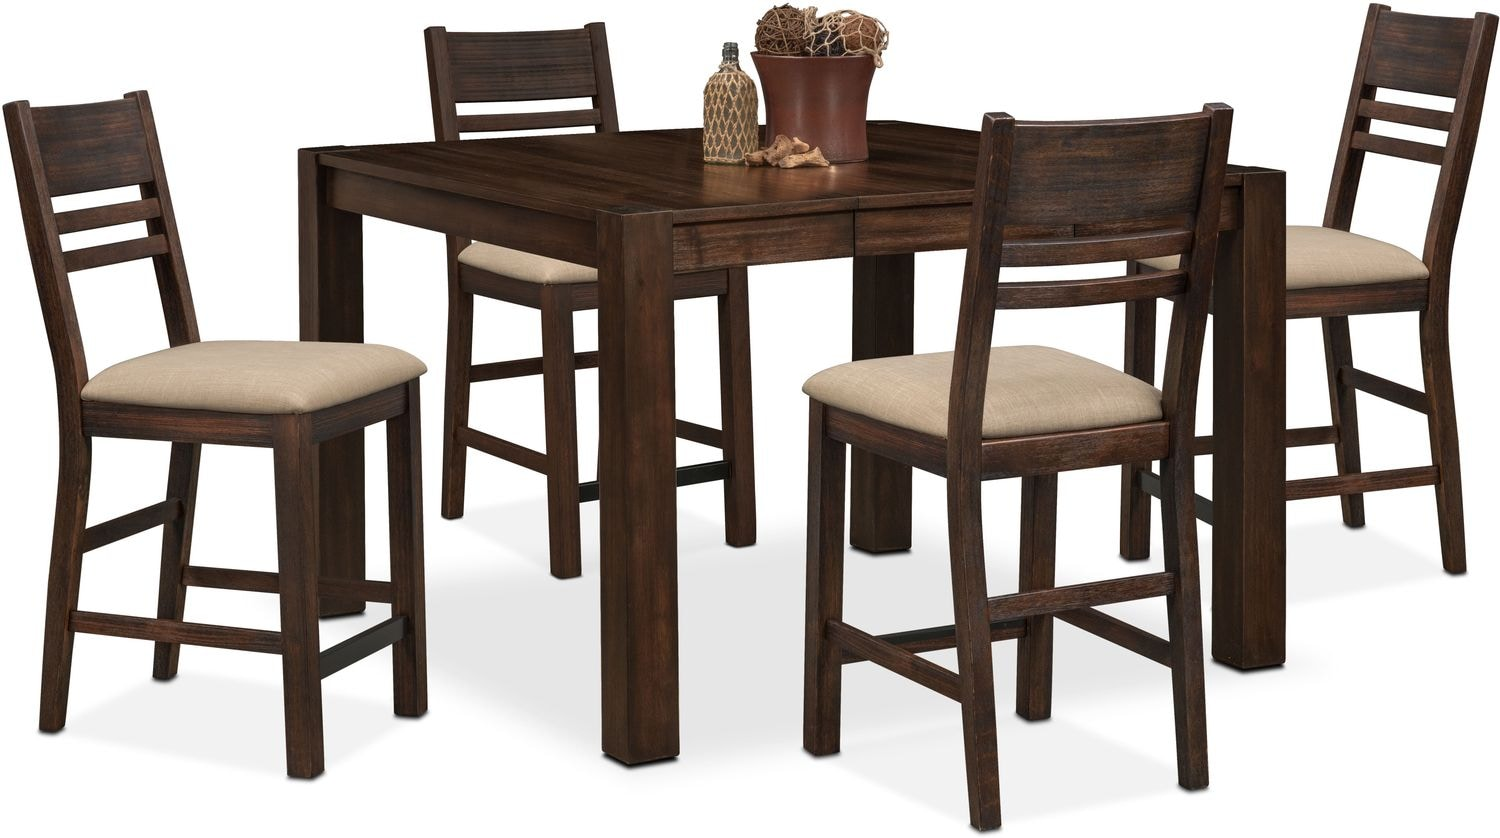 Tribeca Counter Height Table And 4 Side Chairs Tobacco